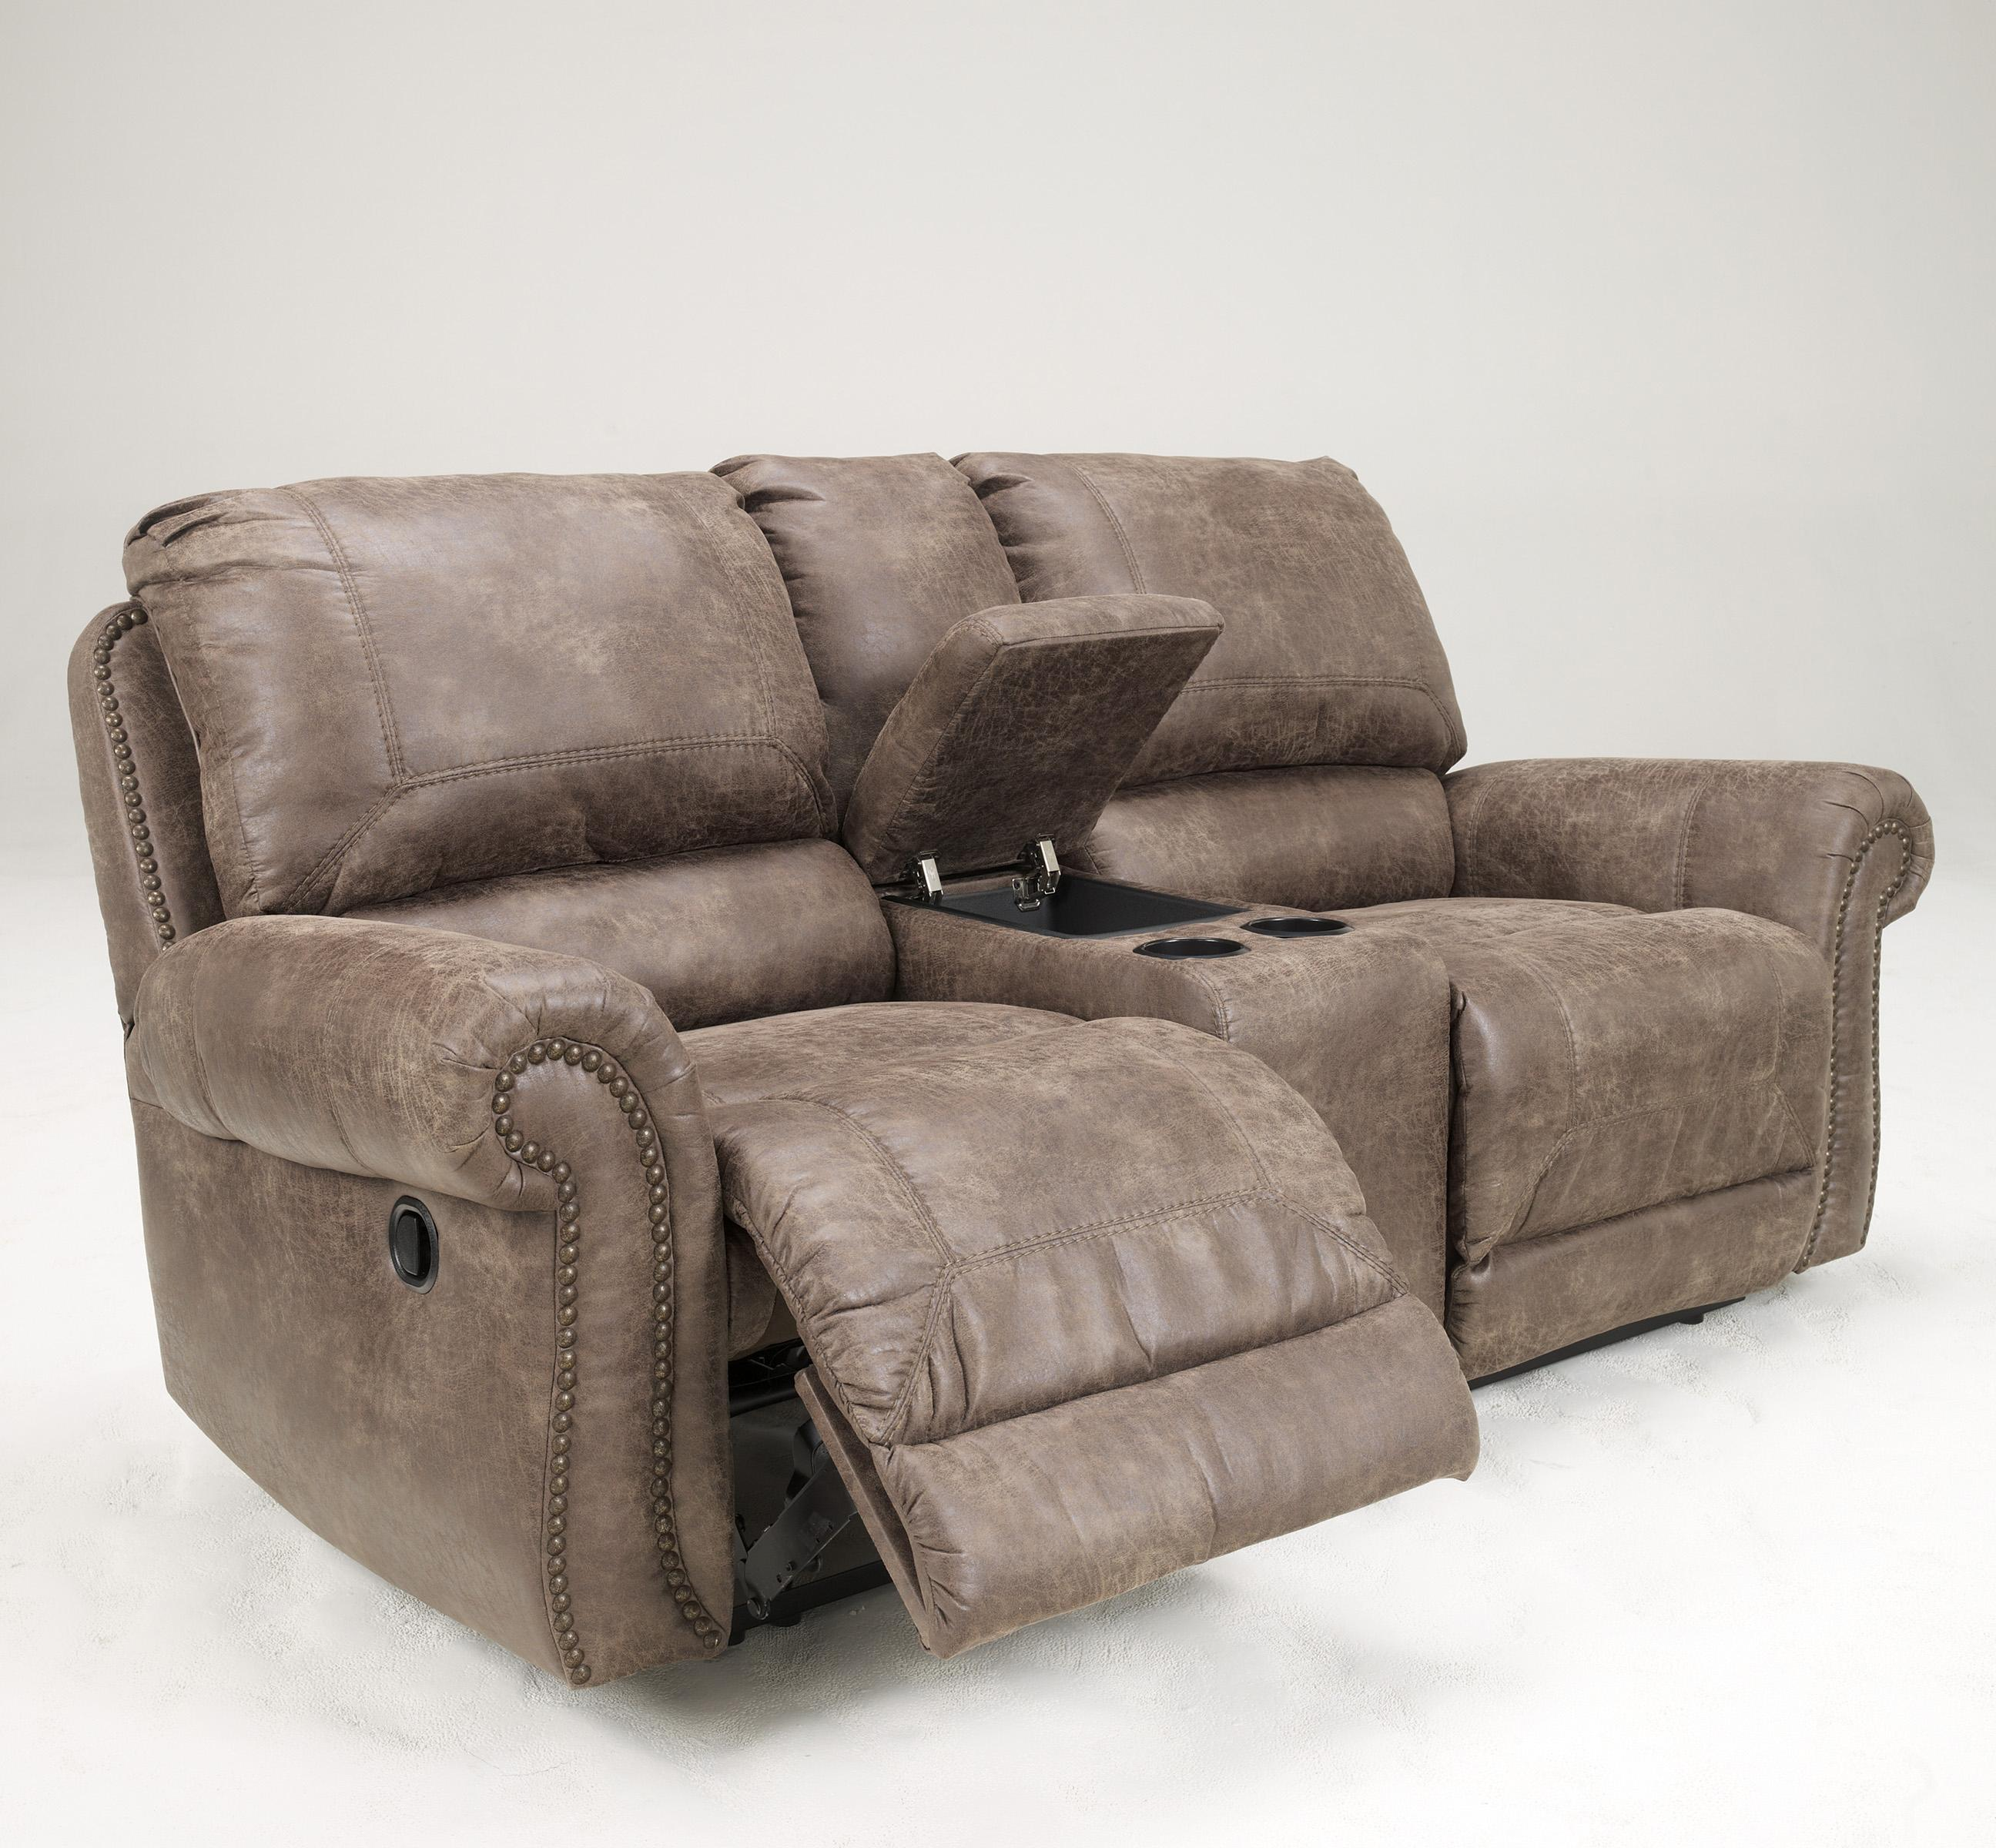 Signature Design By Ashley Oberson Gunsmoke 7410096 Double Reclining Power Loveseat W Console